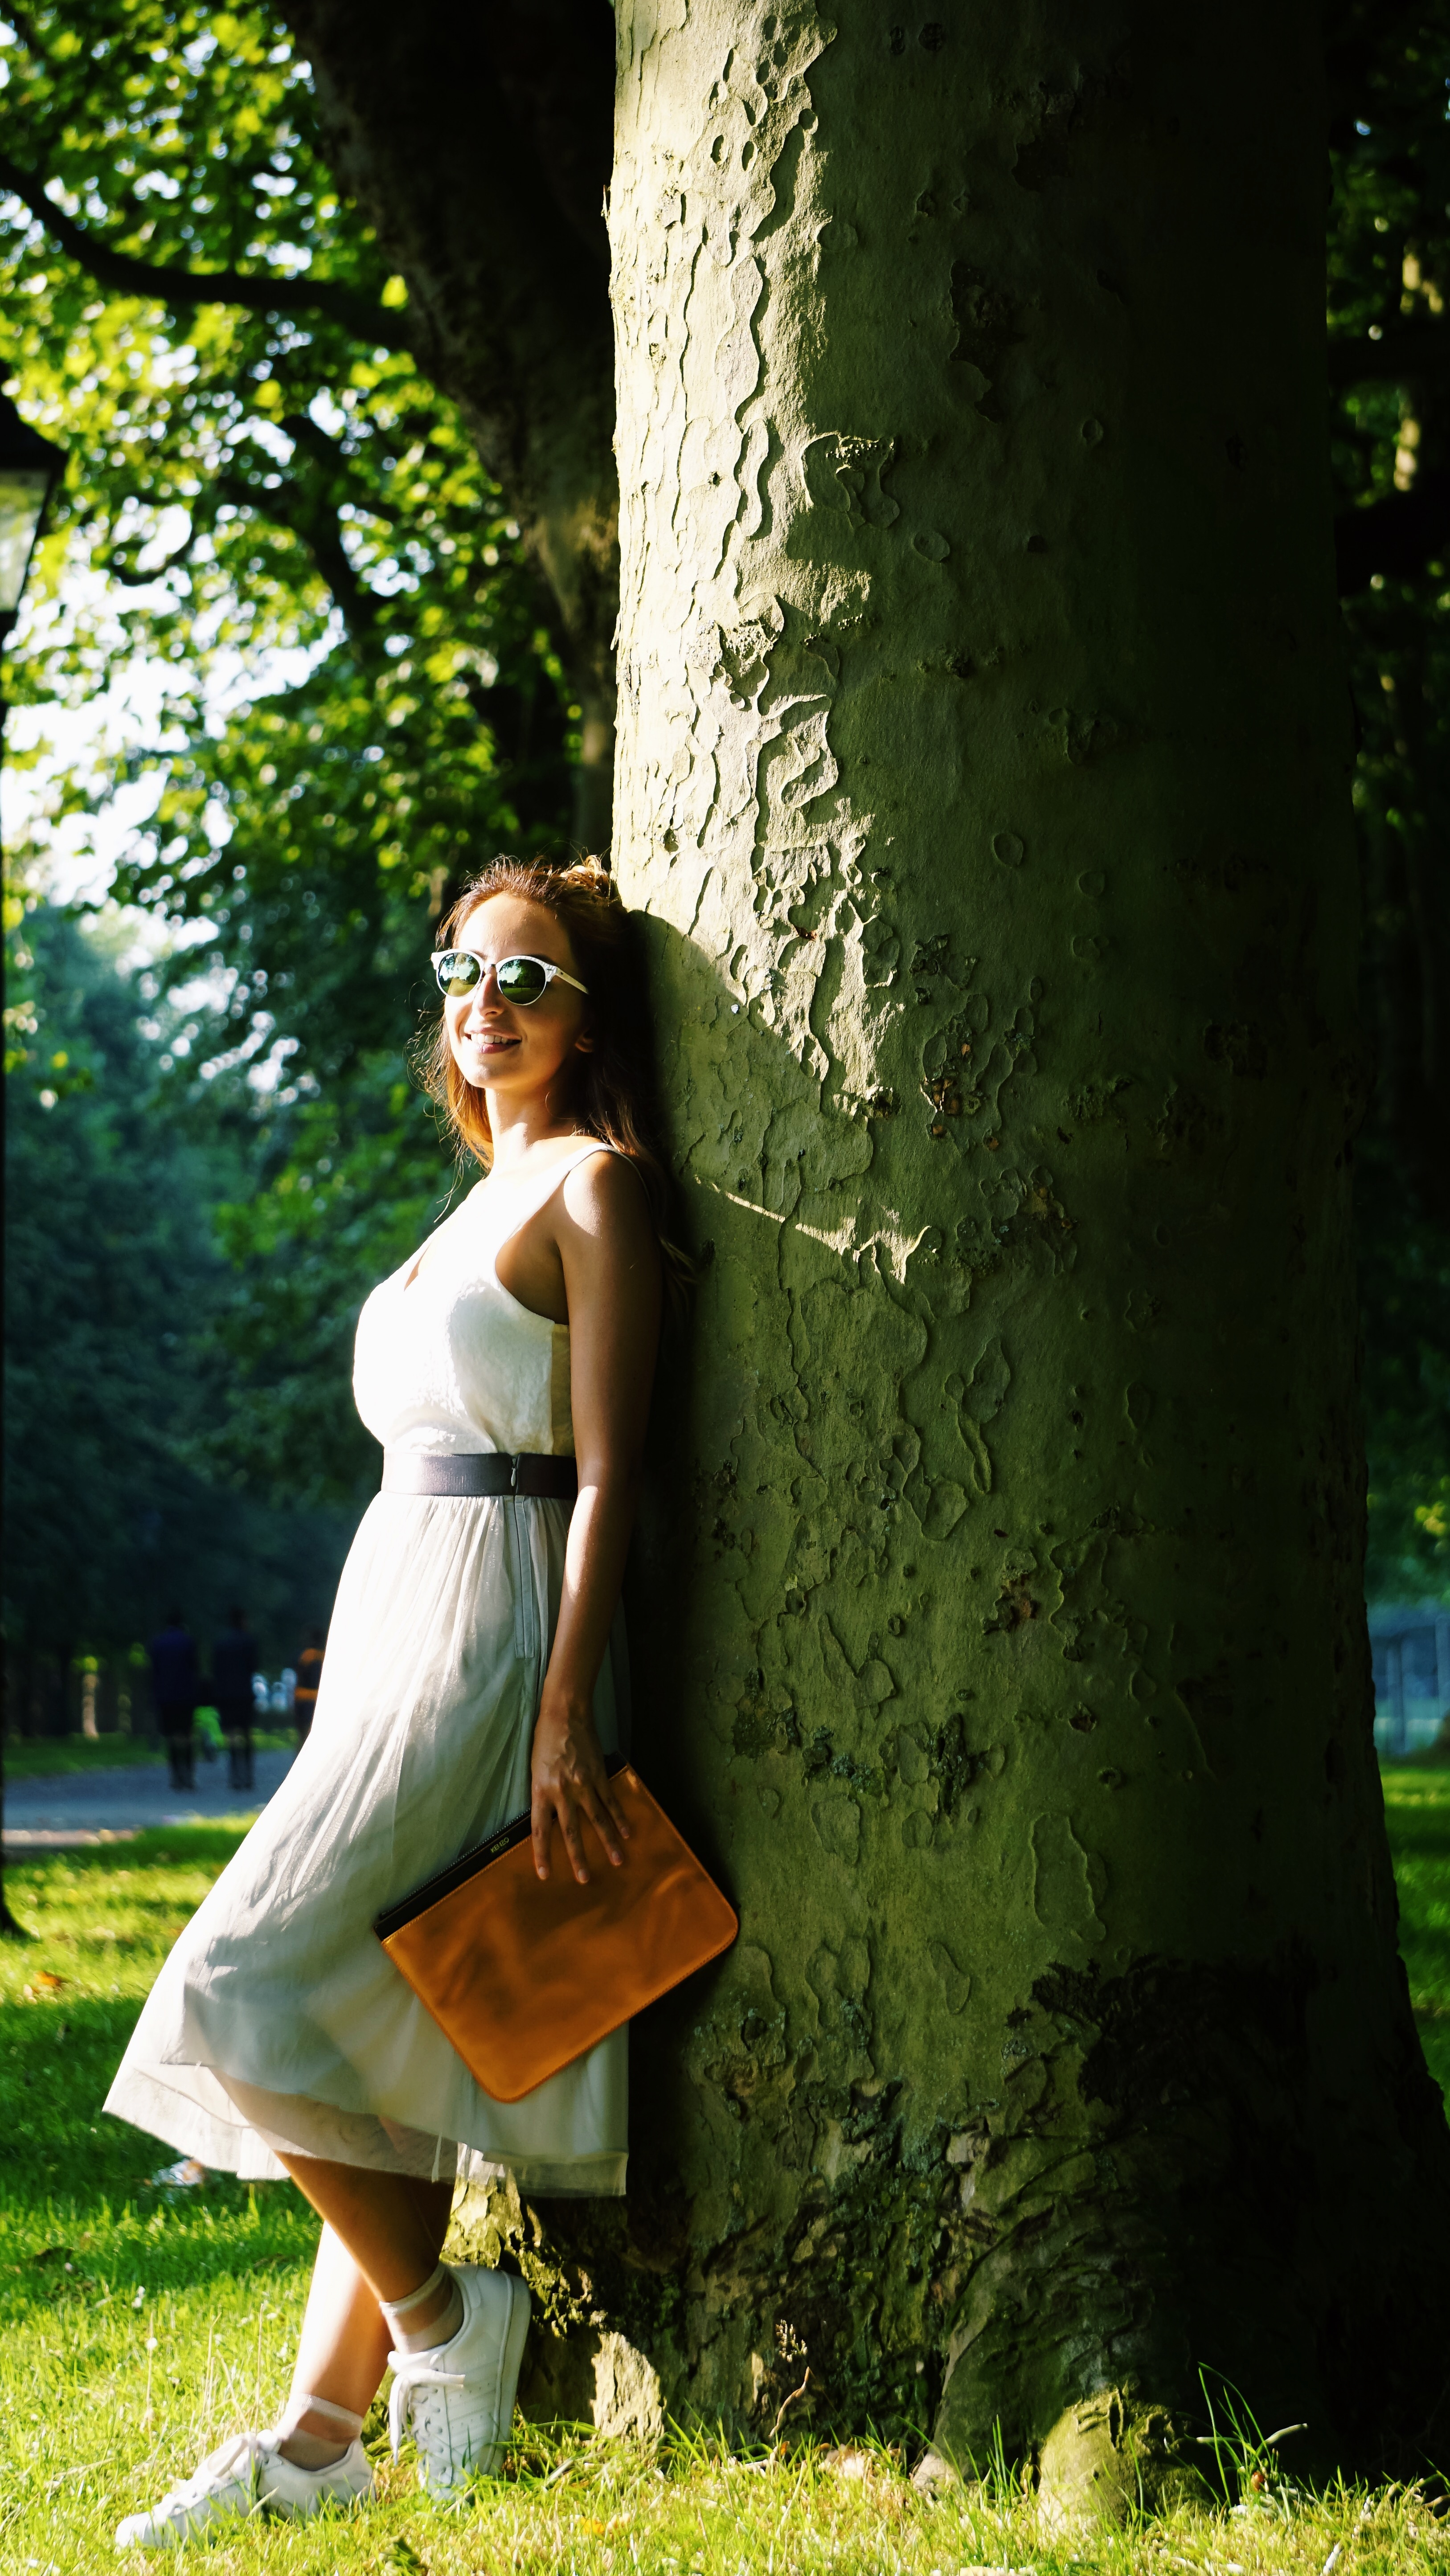 hyphy hip , tulle skirt , HyphyHip, RayBan, reiss, fashion blogger , ootd, outfit post, streetstyle